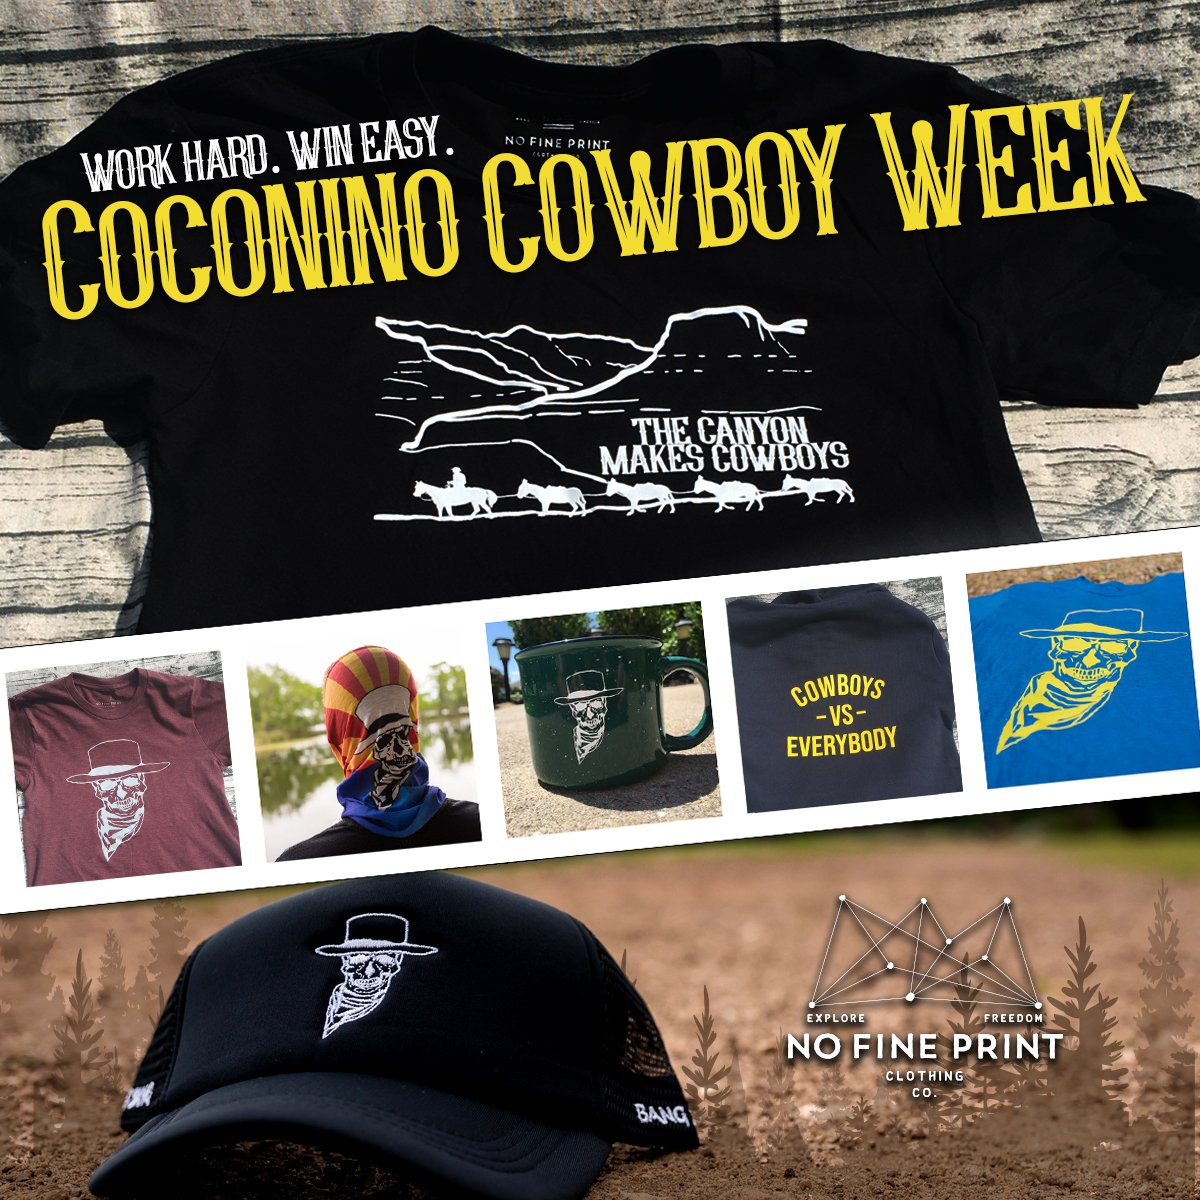 It s all in the online store and a new item will be highlighted each day  this week. Check it out. http   nofineprint.cc coconino   pic.twitter.com 6dQsu8KNJ9 59db245cd